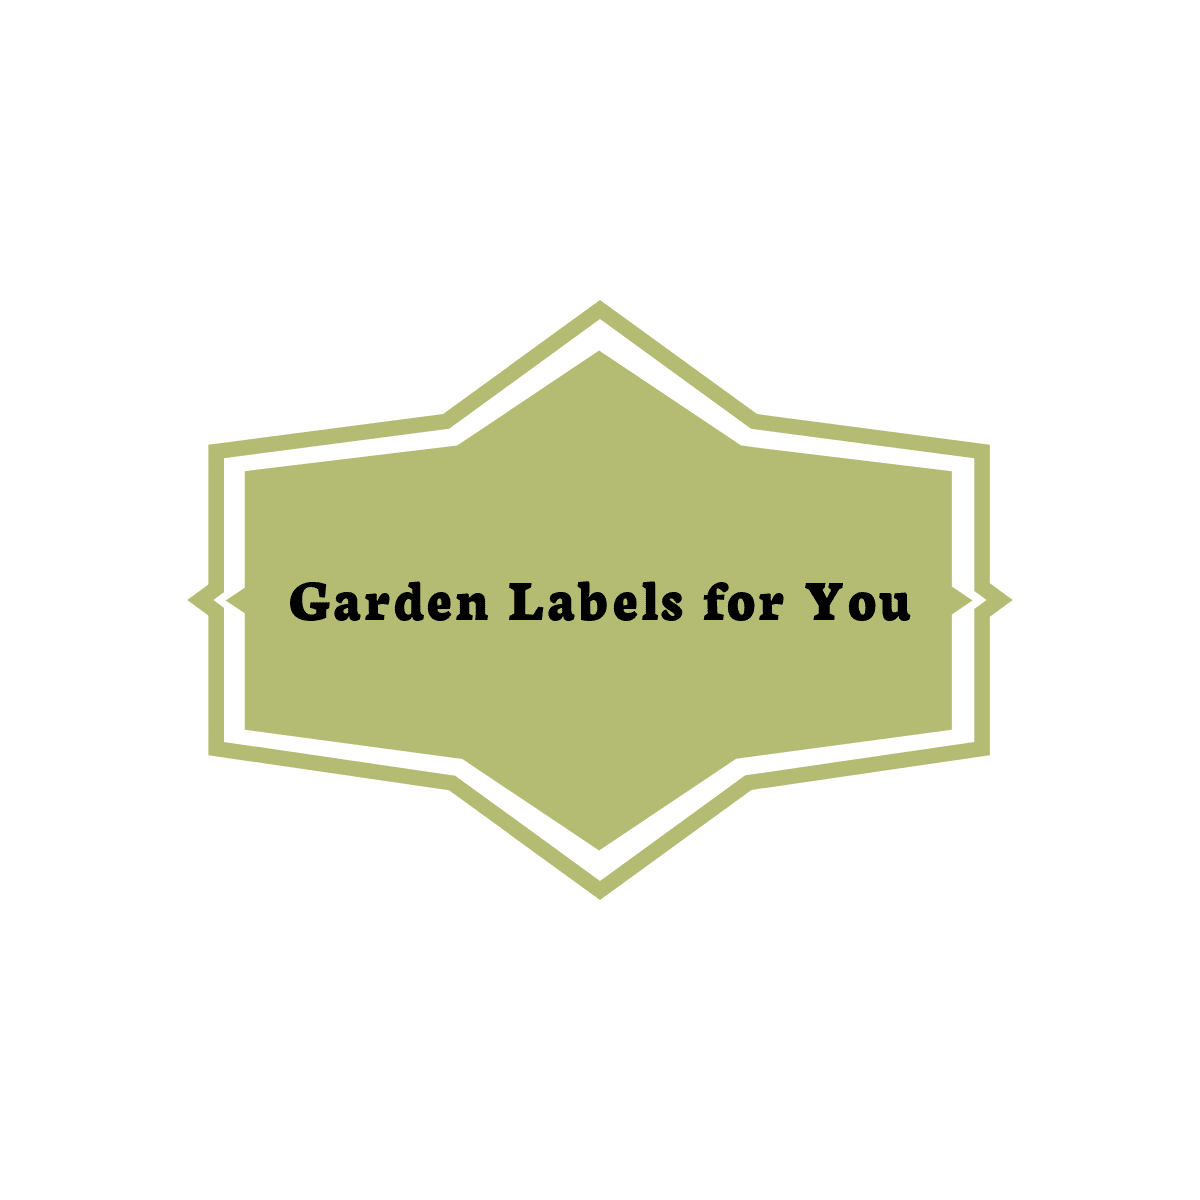 Garden Labels for You